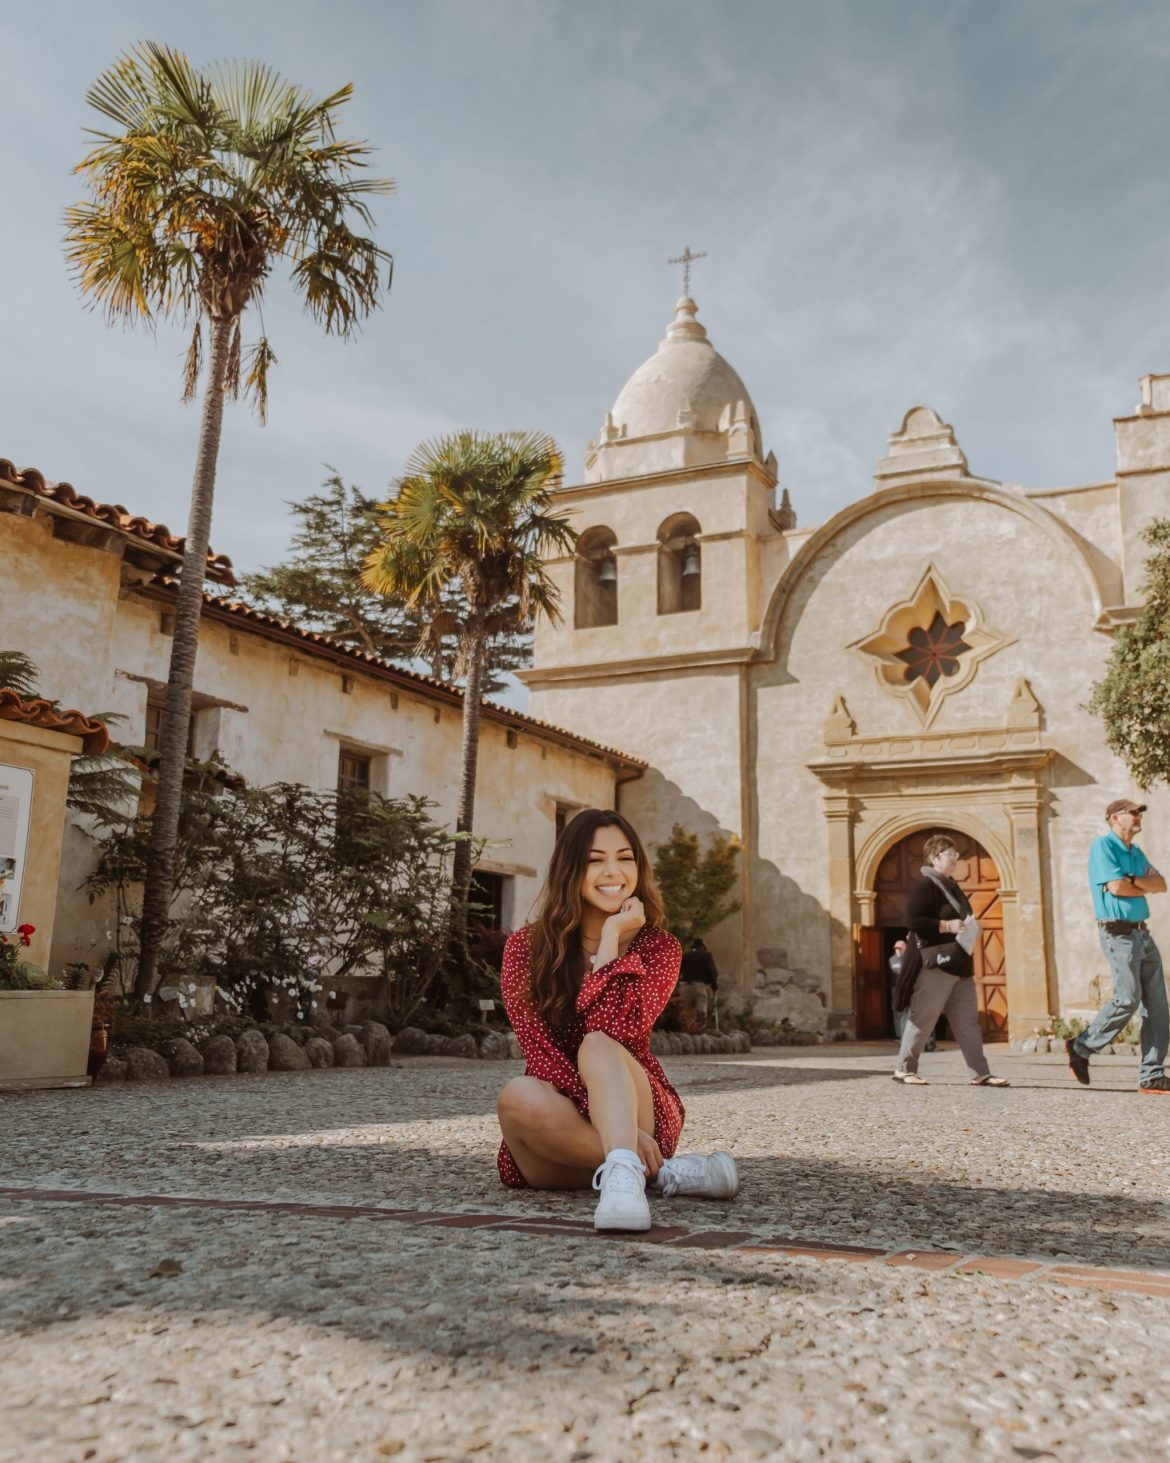 6 Epic Day Trips From San Francisco - Carmel Mission, Carmel by the sea, Carmel by the sea outfits